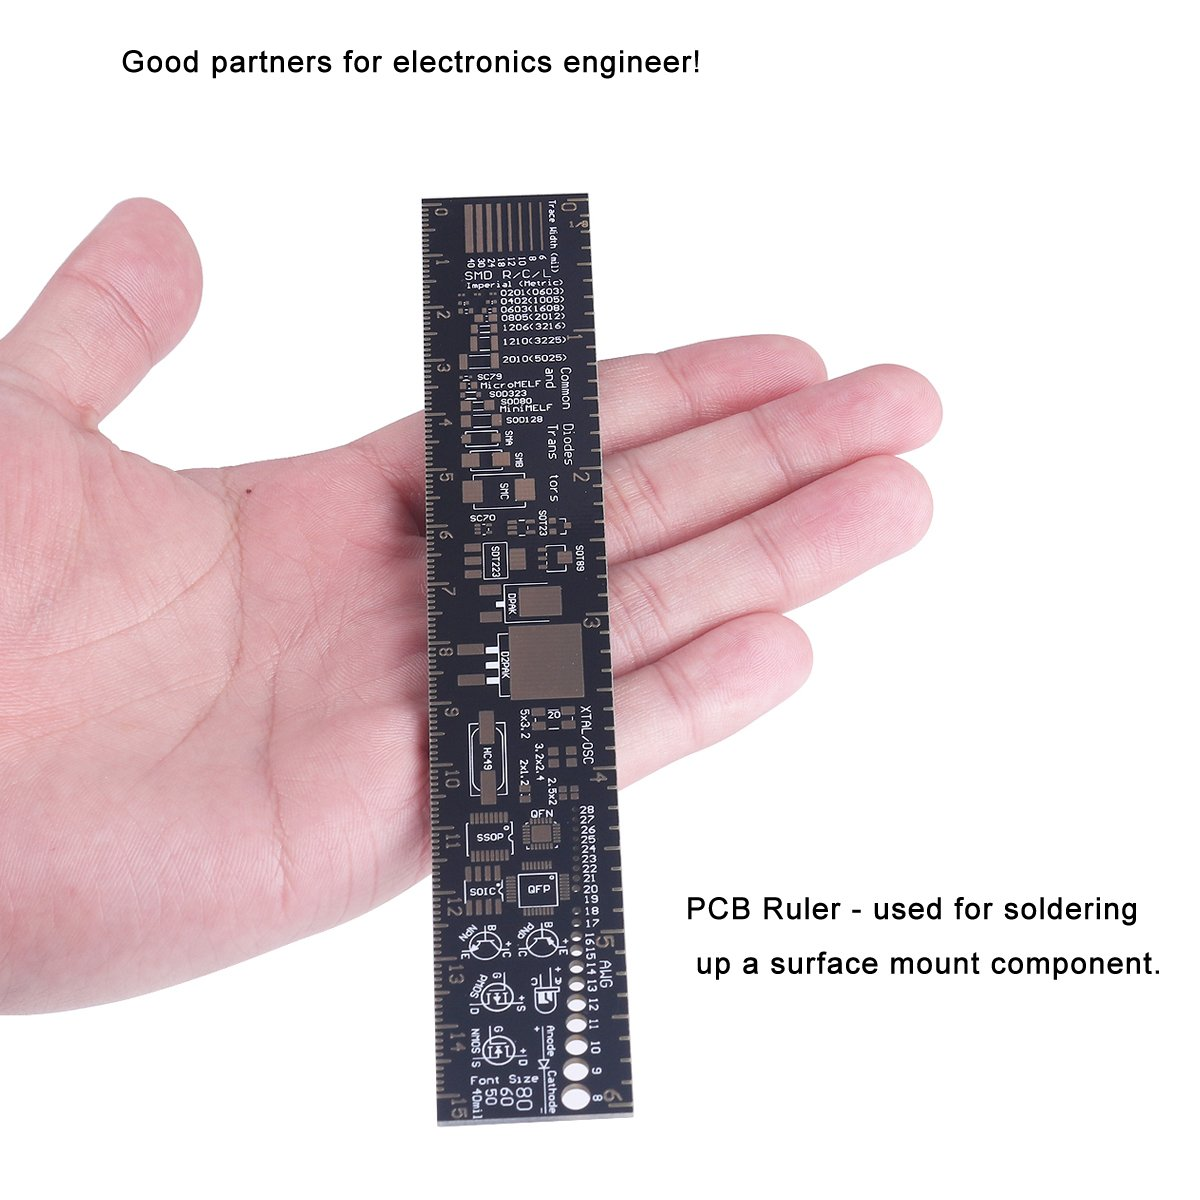 B37 6 Inch 15cm PCB Ruler Measuring Tool Soldering Up Surface for Electronic Engineers/Makers